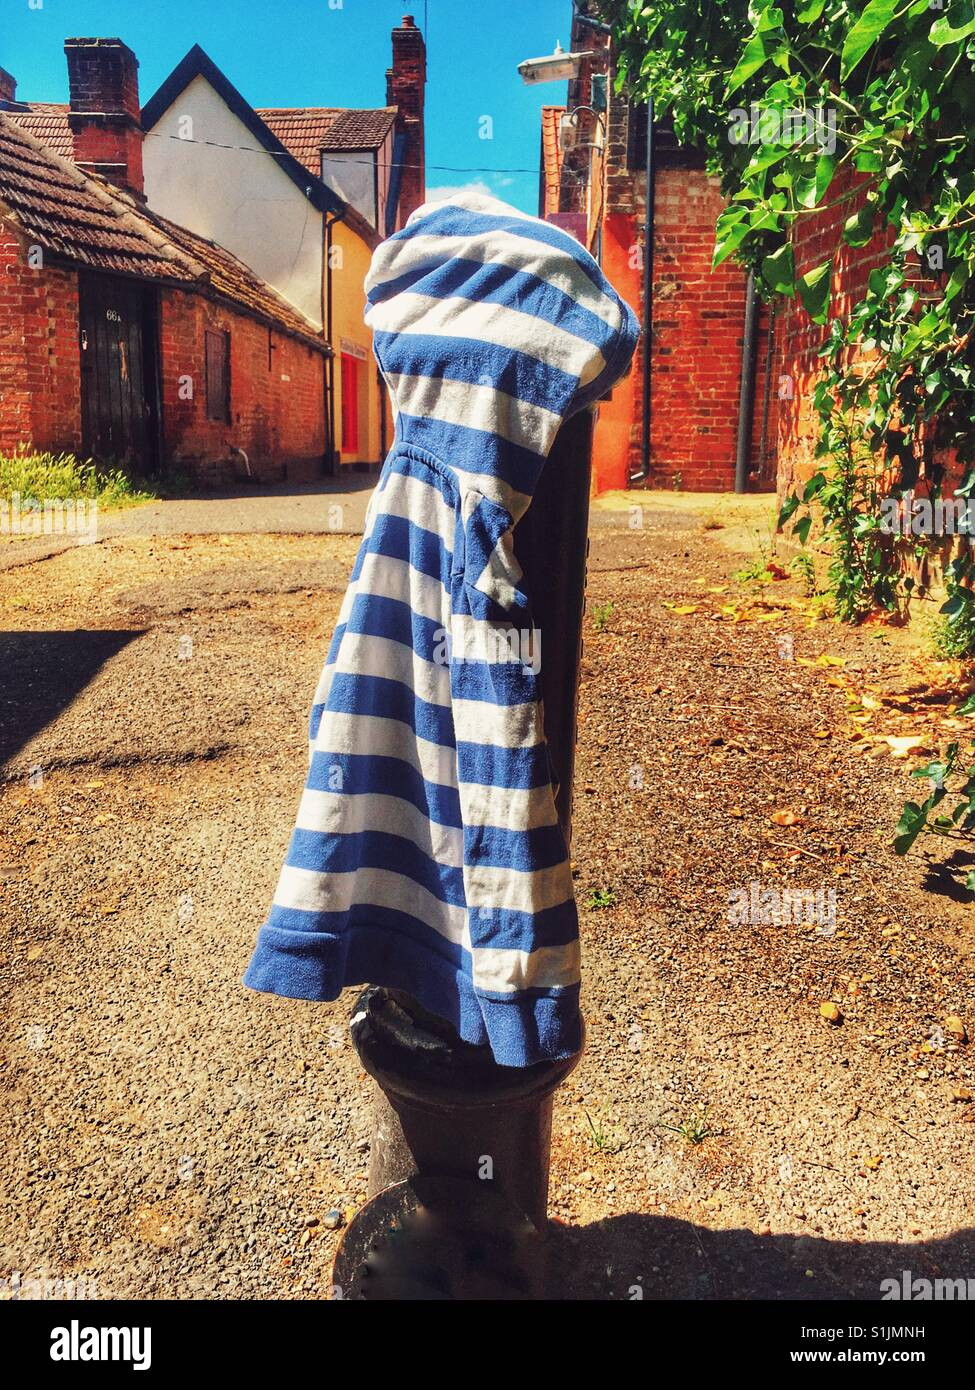 Child's hooded top lost and placed on post for owner to find, Woodbridge, Suffolk, UK. - Stock Image